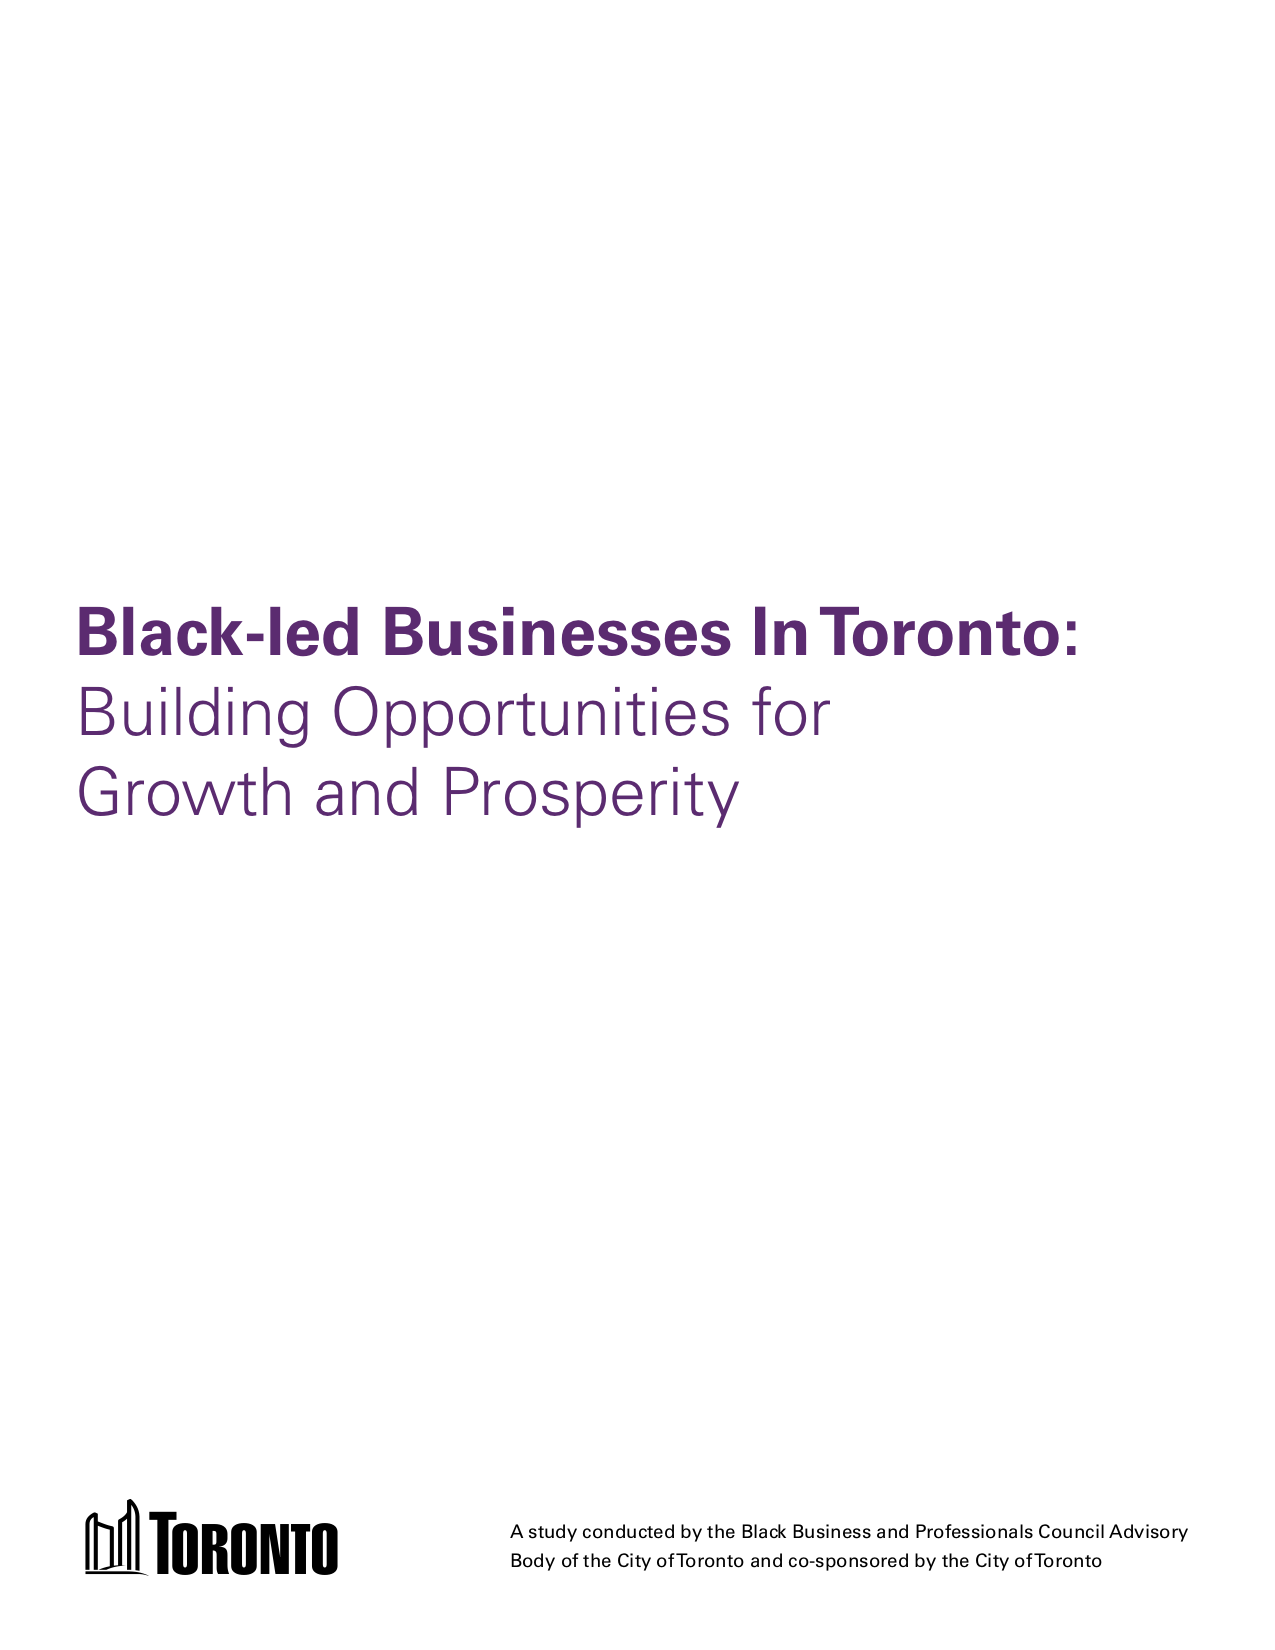 Black-led-Businesses-Torontocover.png